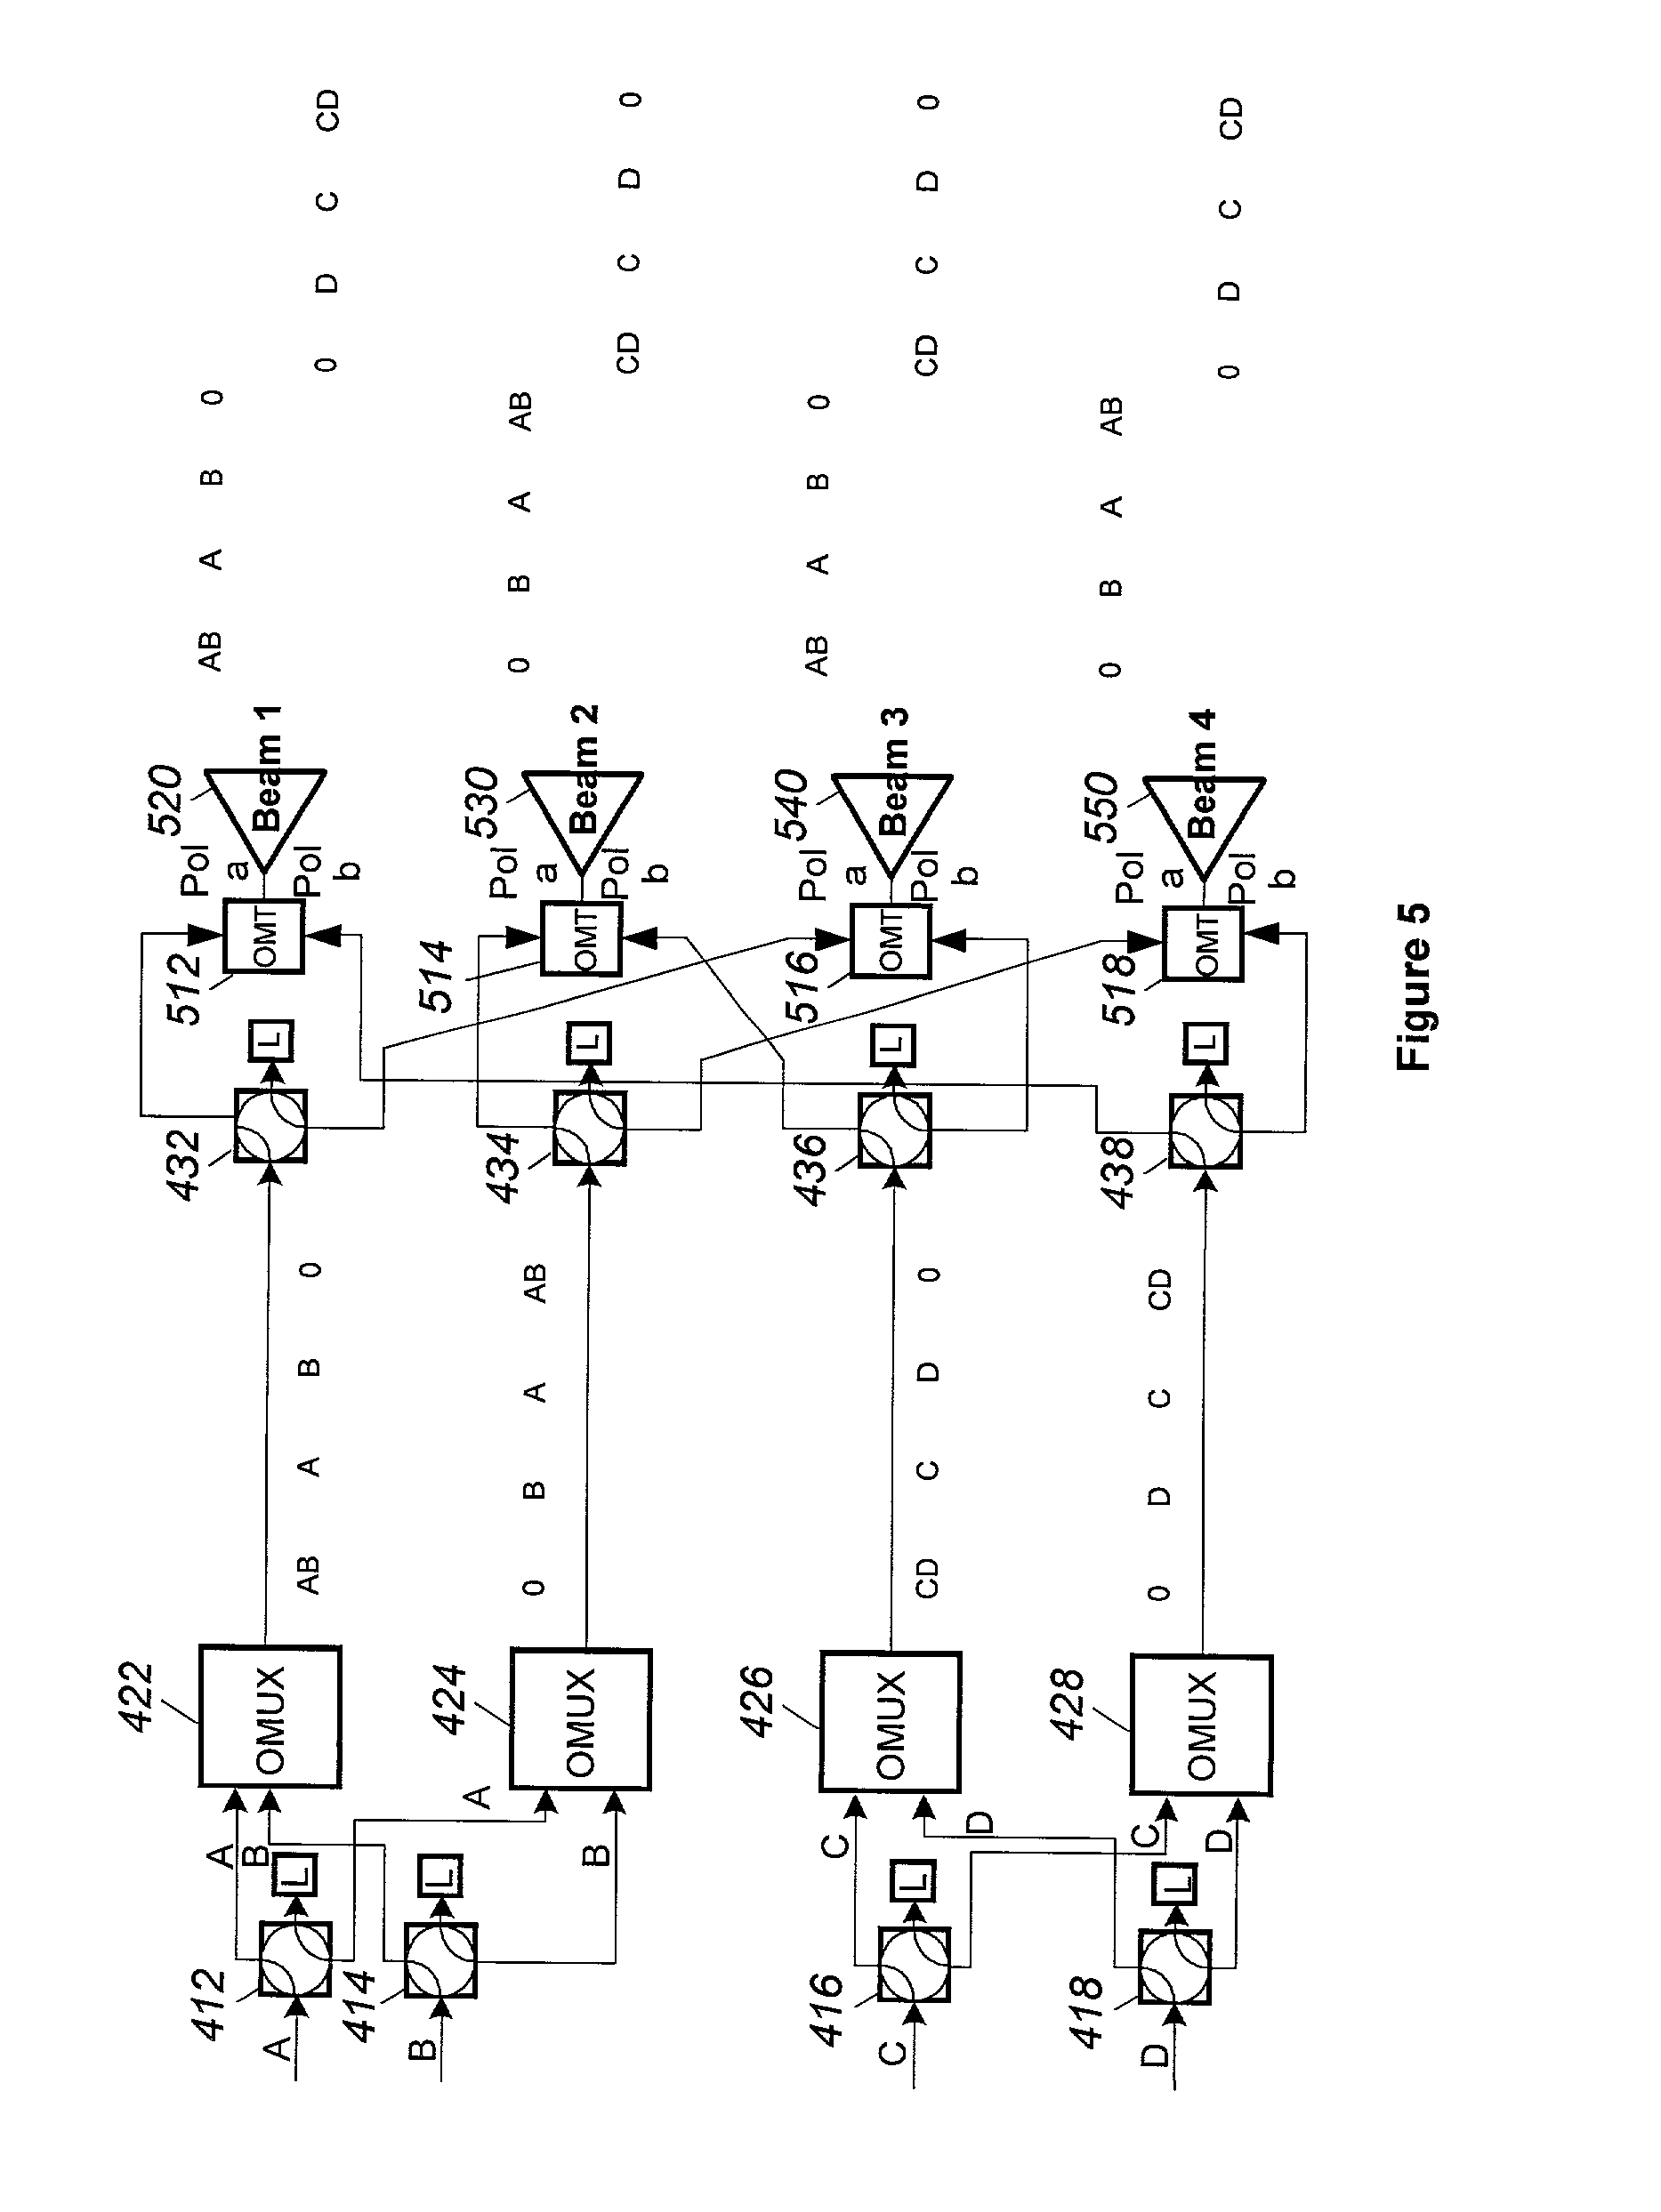 33 together with Best  mercial Weed Eaters also Equivalent Circuit Of A Solid State Relay likewise US20030134595 moreover 2 Way Switch Wiring Diagram. on power feed via switch